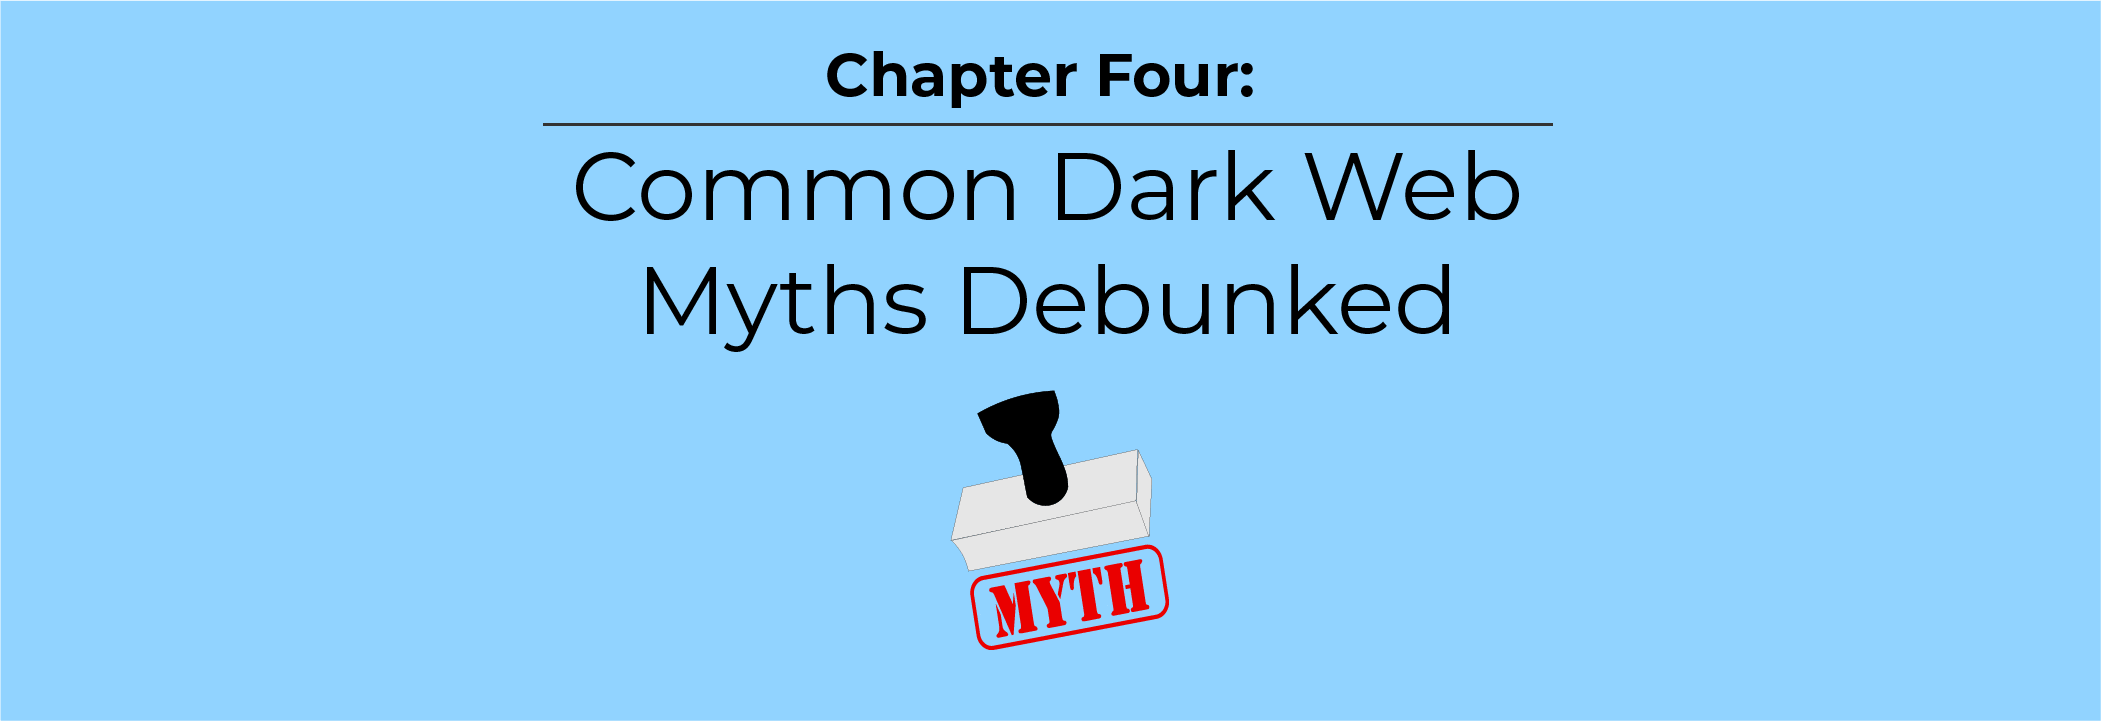 Common Dark Web Myths Debunked